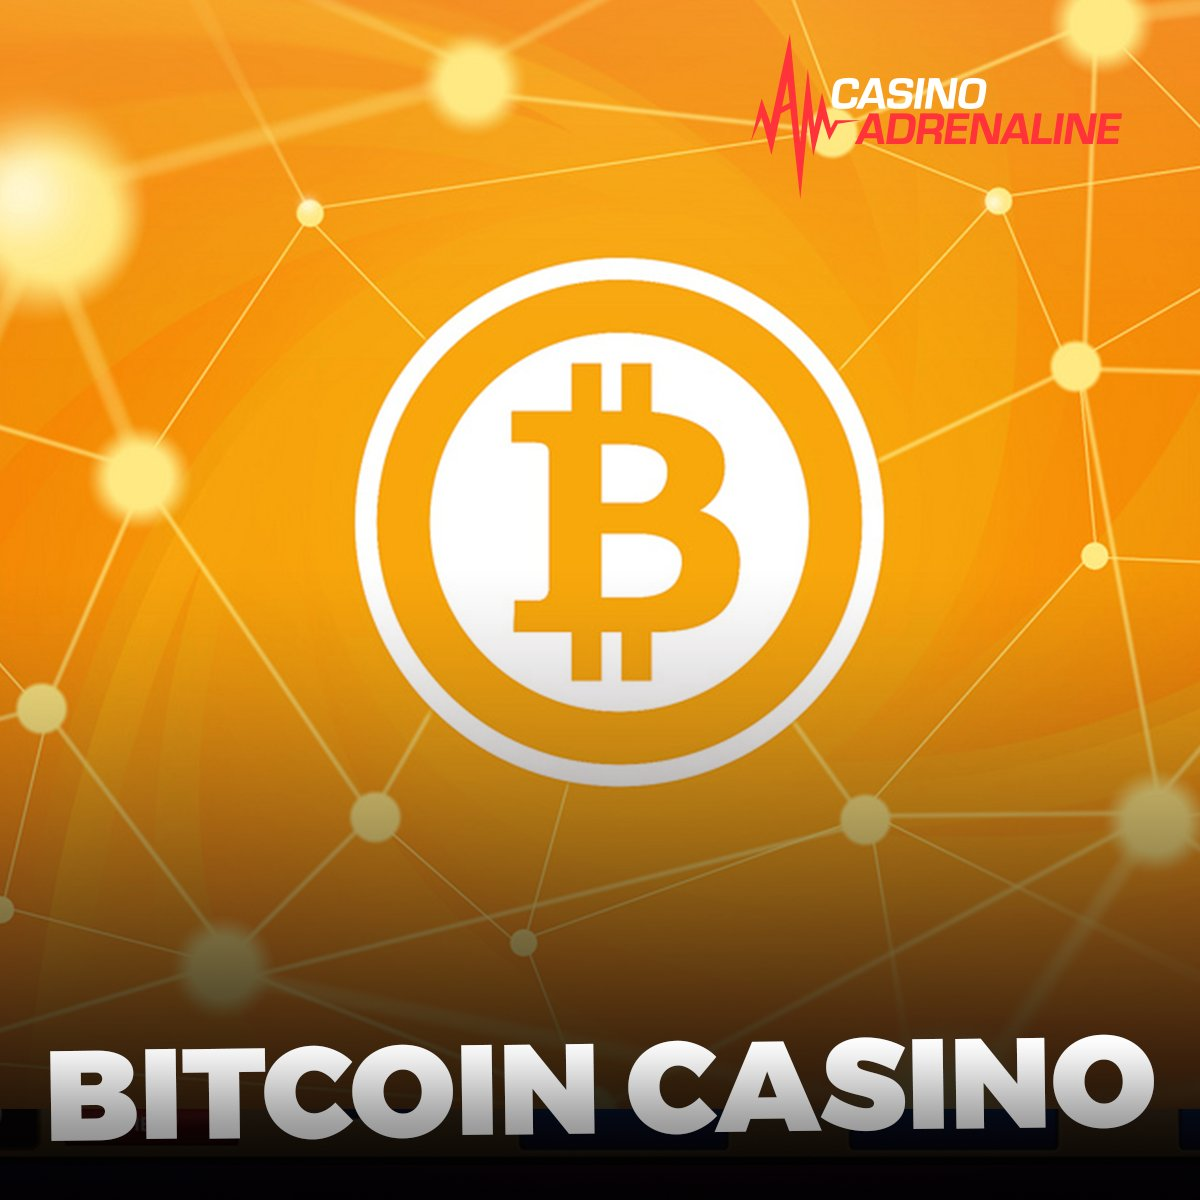 test Twitter Media - Find out everything you need to know about Bitcoin casino at our latest blog https://t.co/PWEWEBD3c4 https://t.co/7RLjuwO7T9